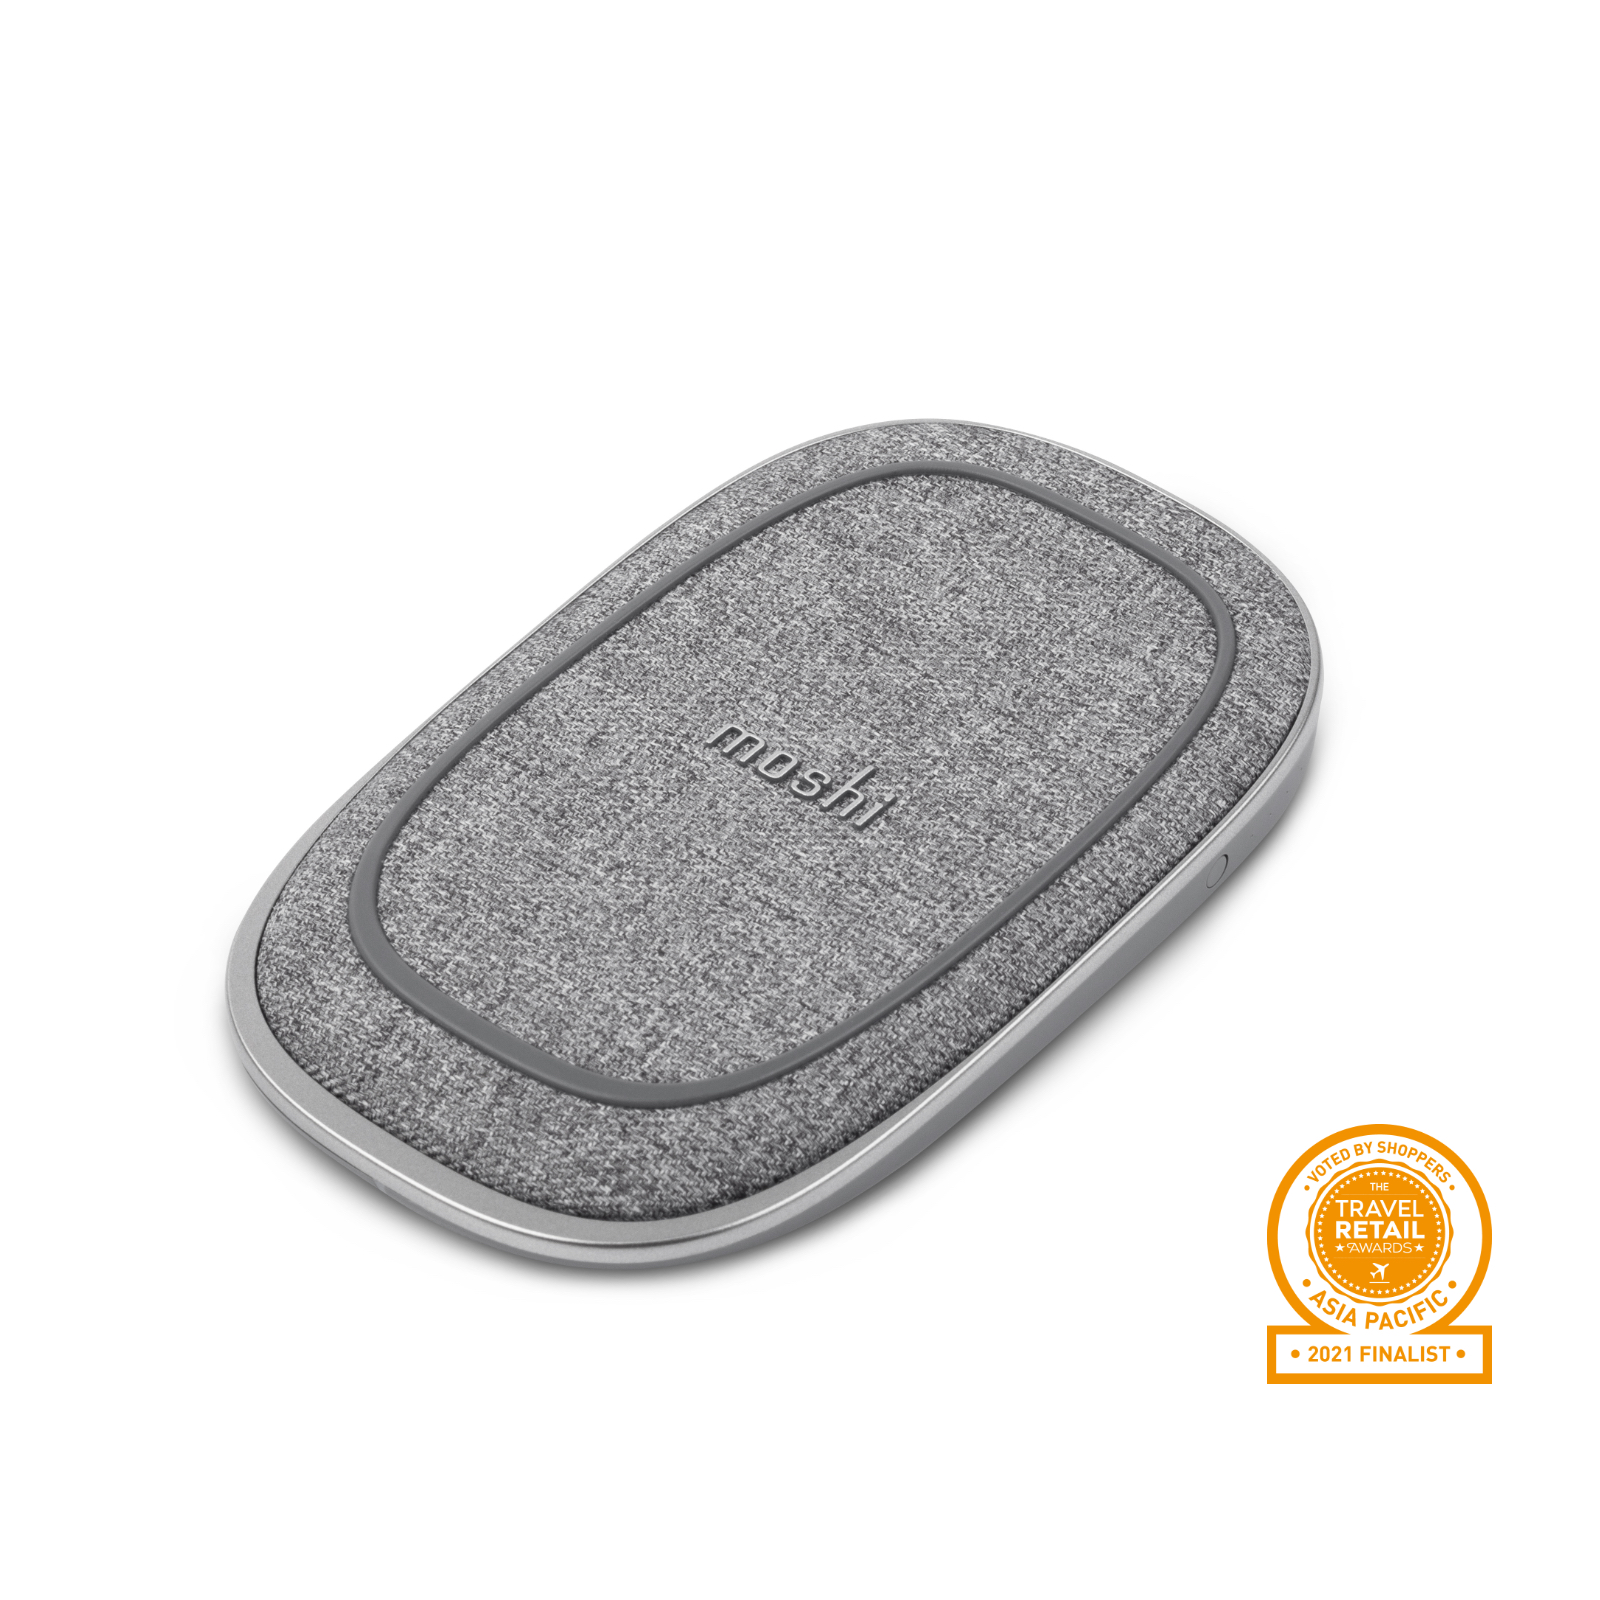 Porto Q 5K Portable Battery with Built-in Wireless Charger-image